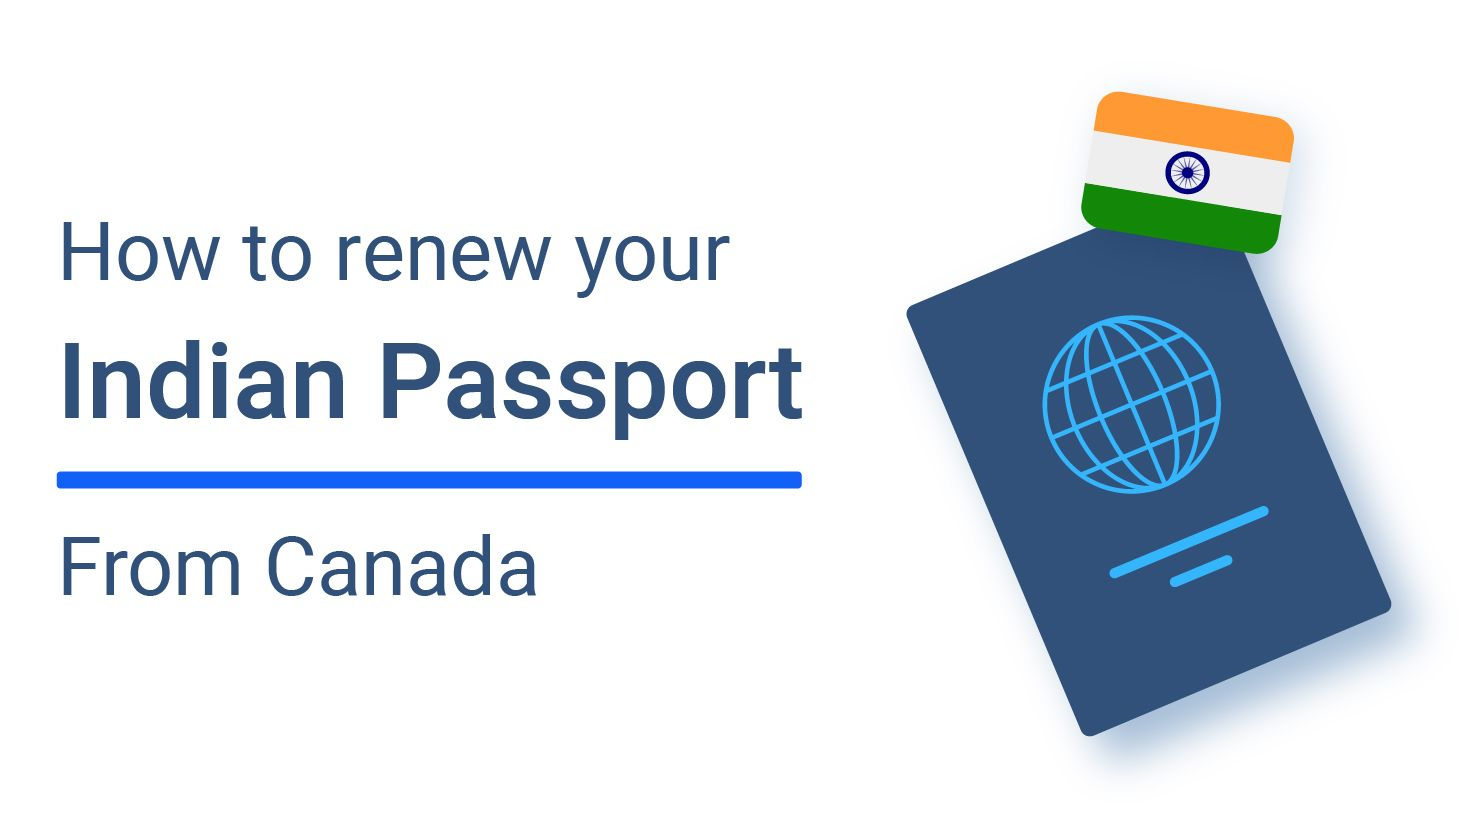 How to Renew Indian Passport in Canada